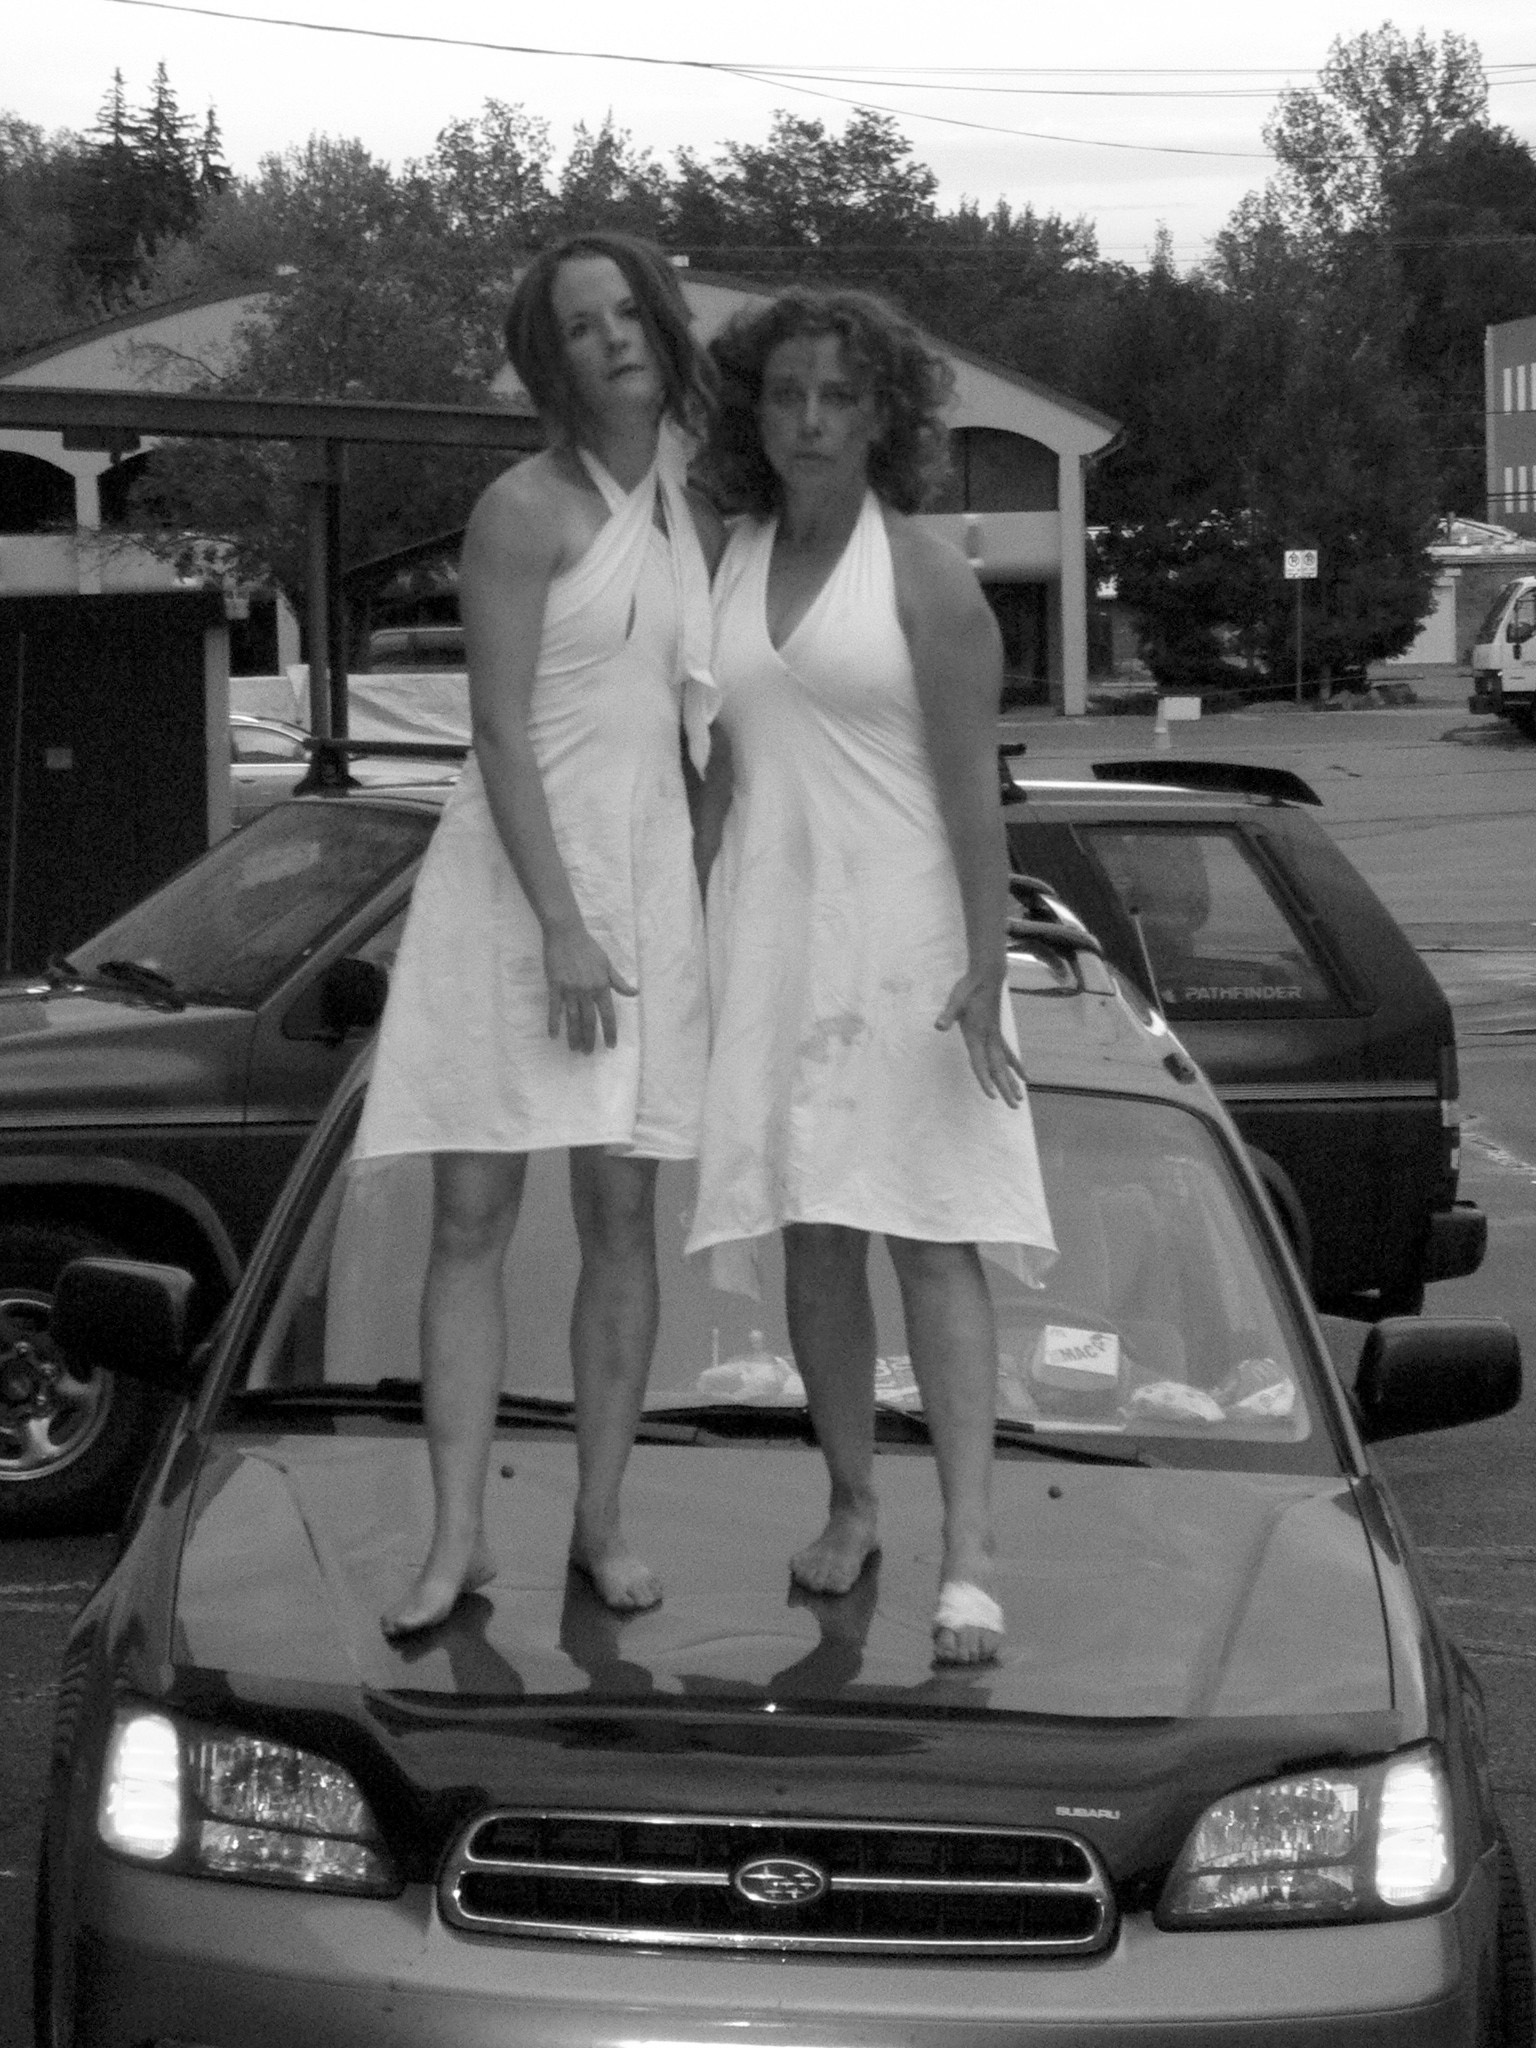 "Under the Hood - A Site-Specific work that takes place on a 2001 Subaru Outback created and performed by Breanna Rogers and Joanna RotkinThe Boulder International Fringe Festival,  2007:  Under The Hood wins ""Pick of The Fringe"" for most innovative performance.photo by Glen Kalen 2008"